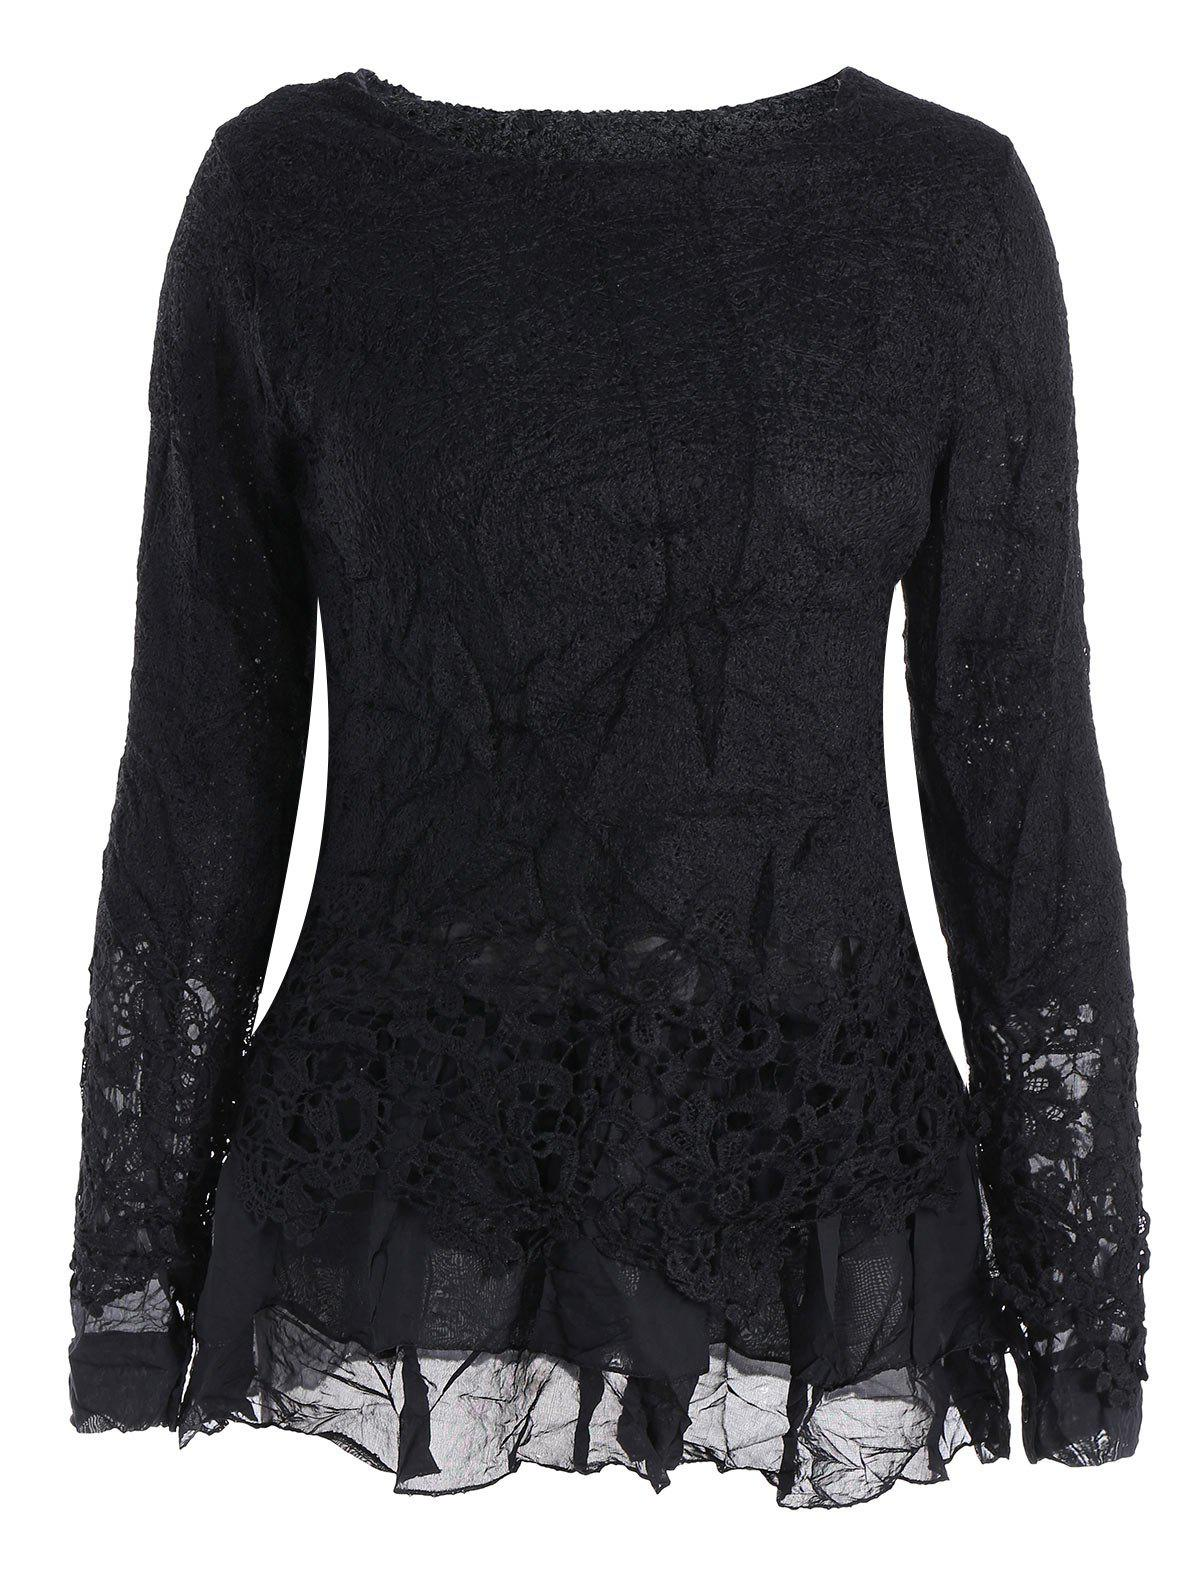 Long Sleeves Lace Panel Top - BLACK M